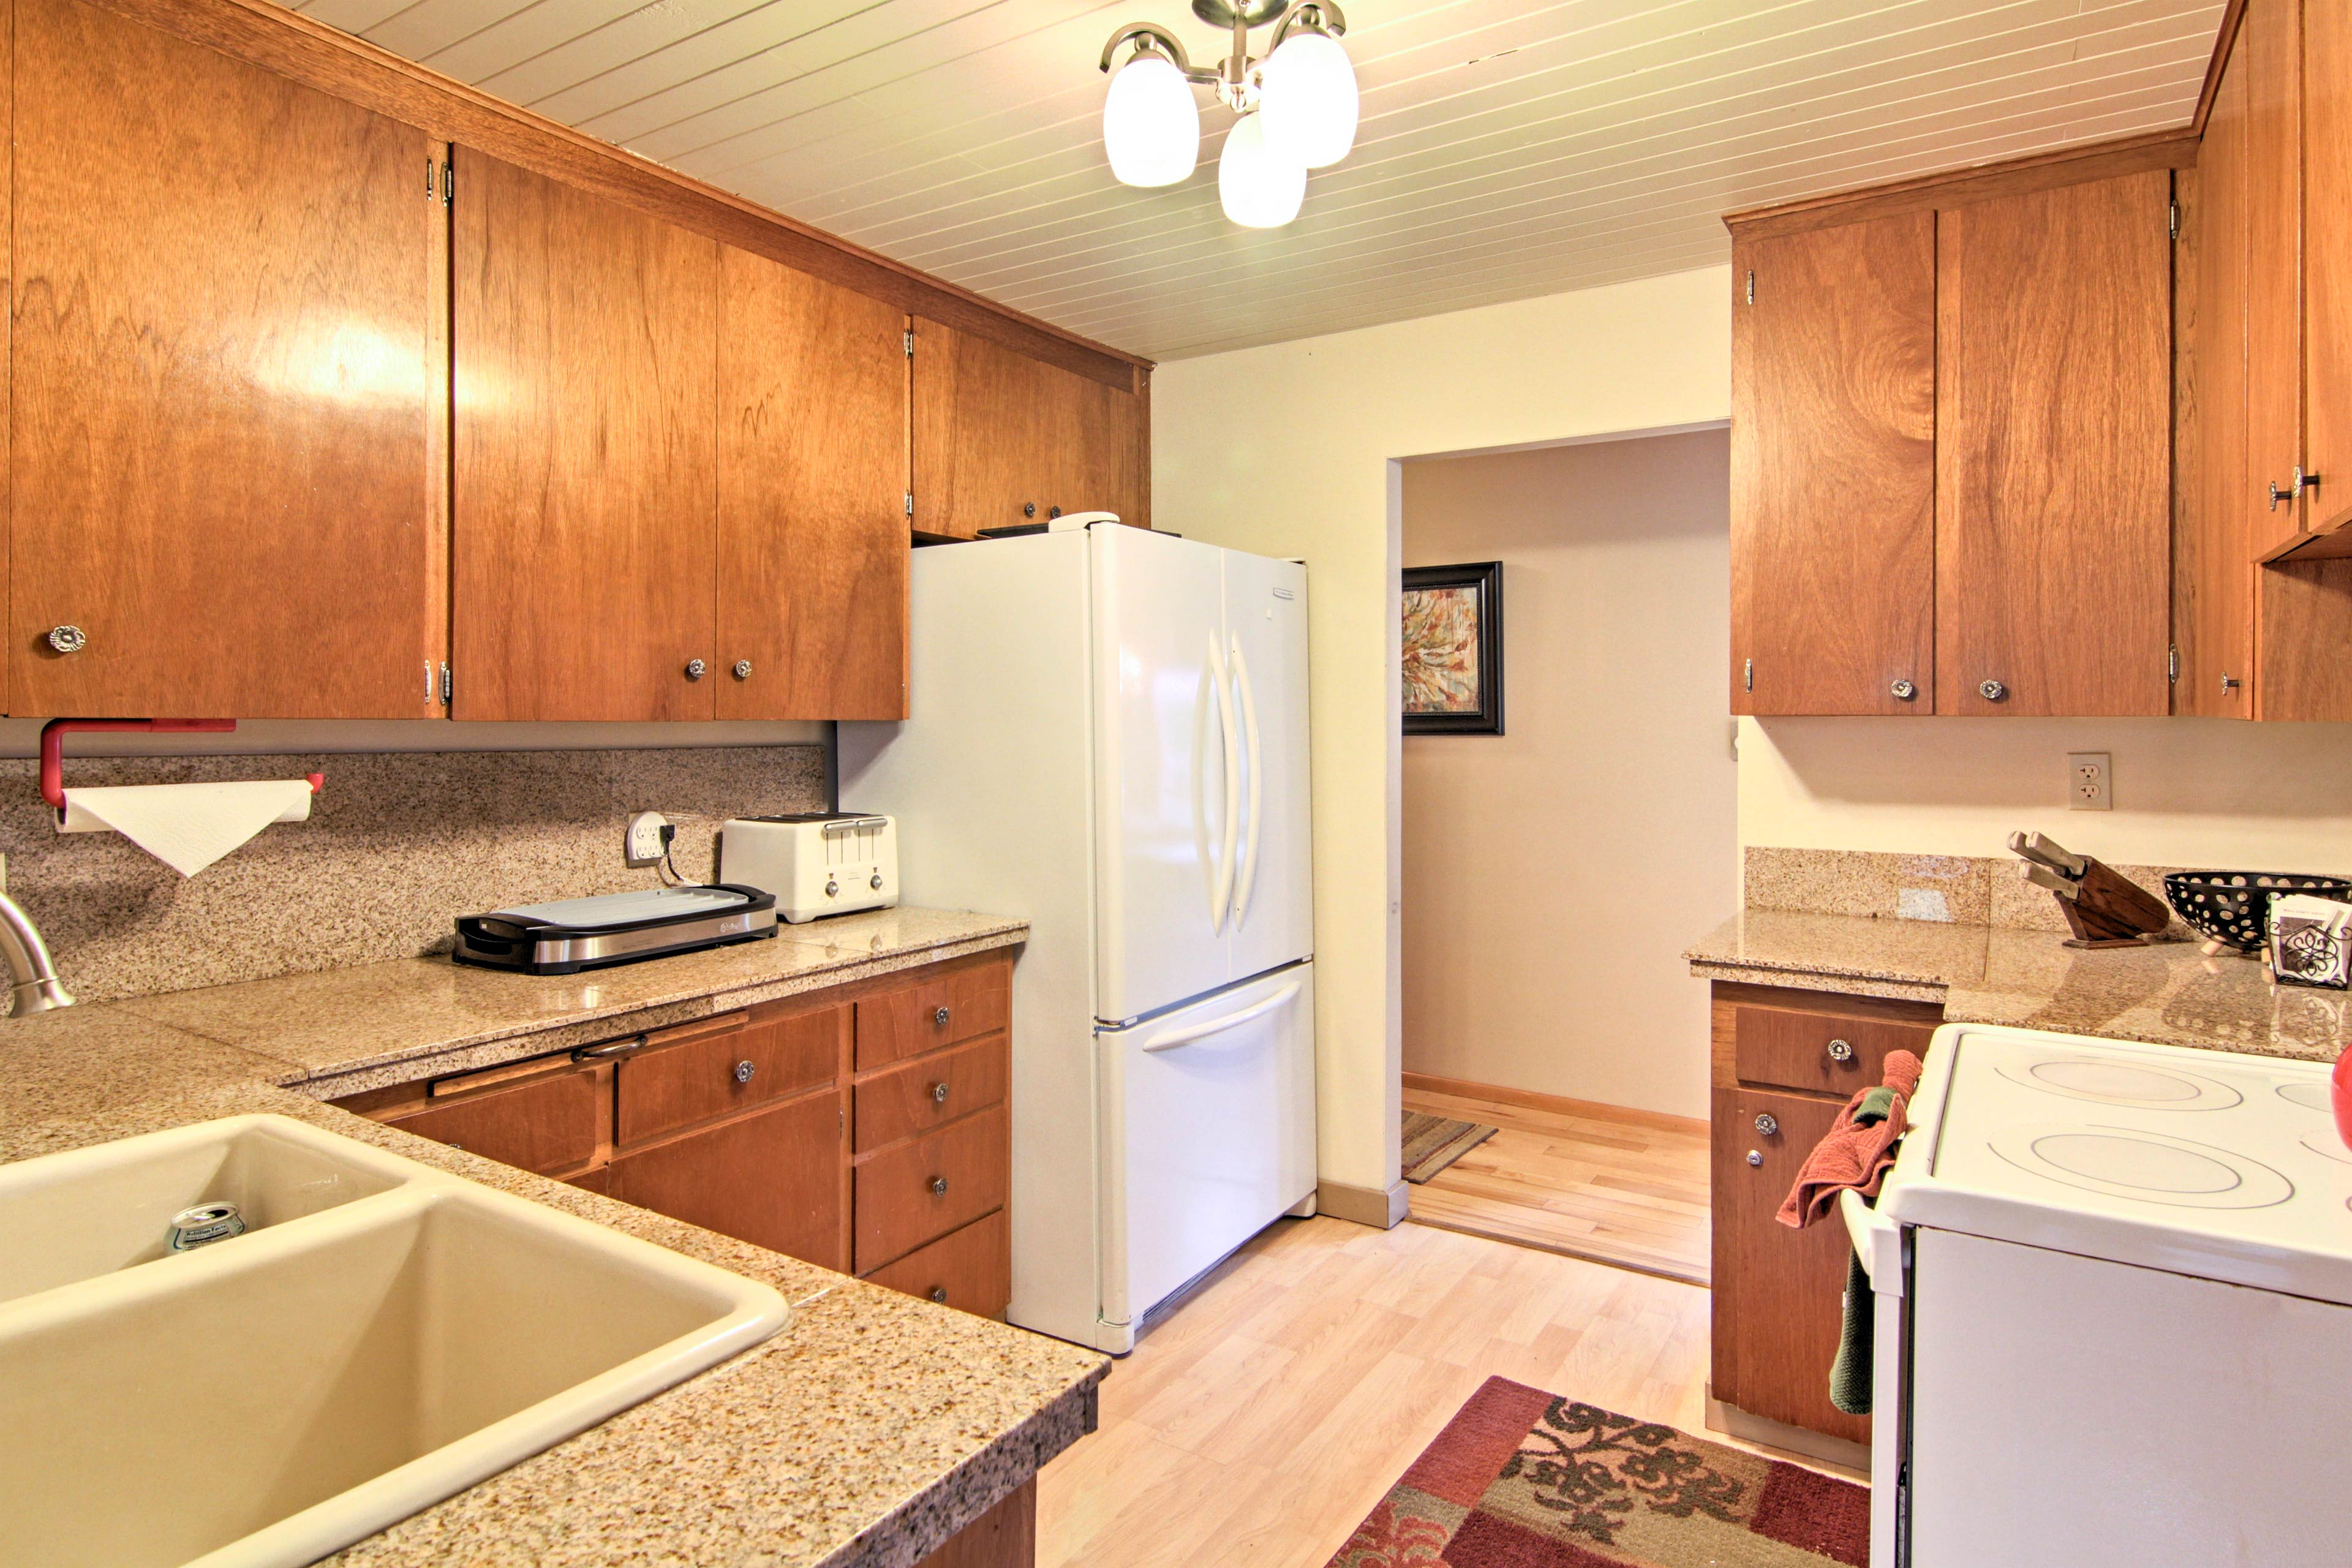 The fully equipped kitchen has everything you need to prepare meals.